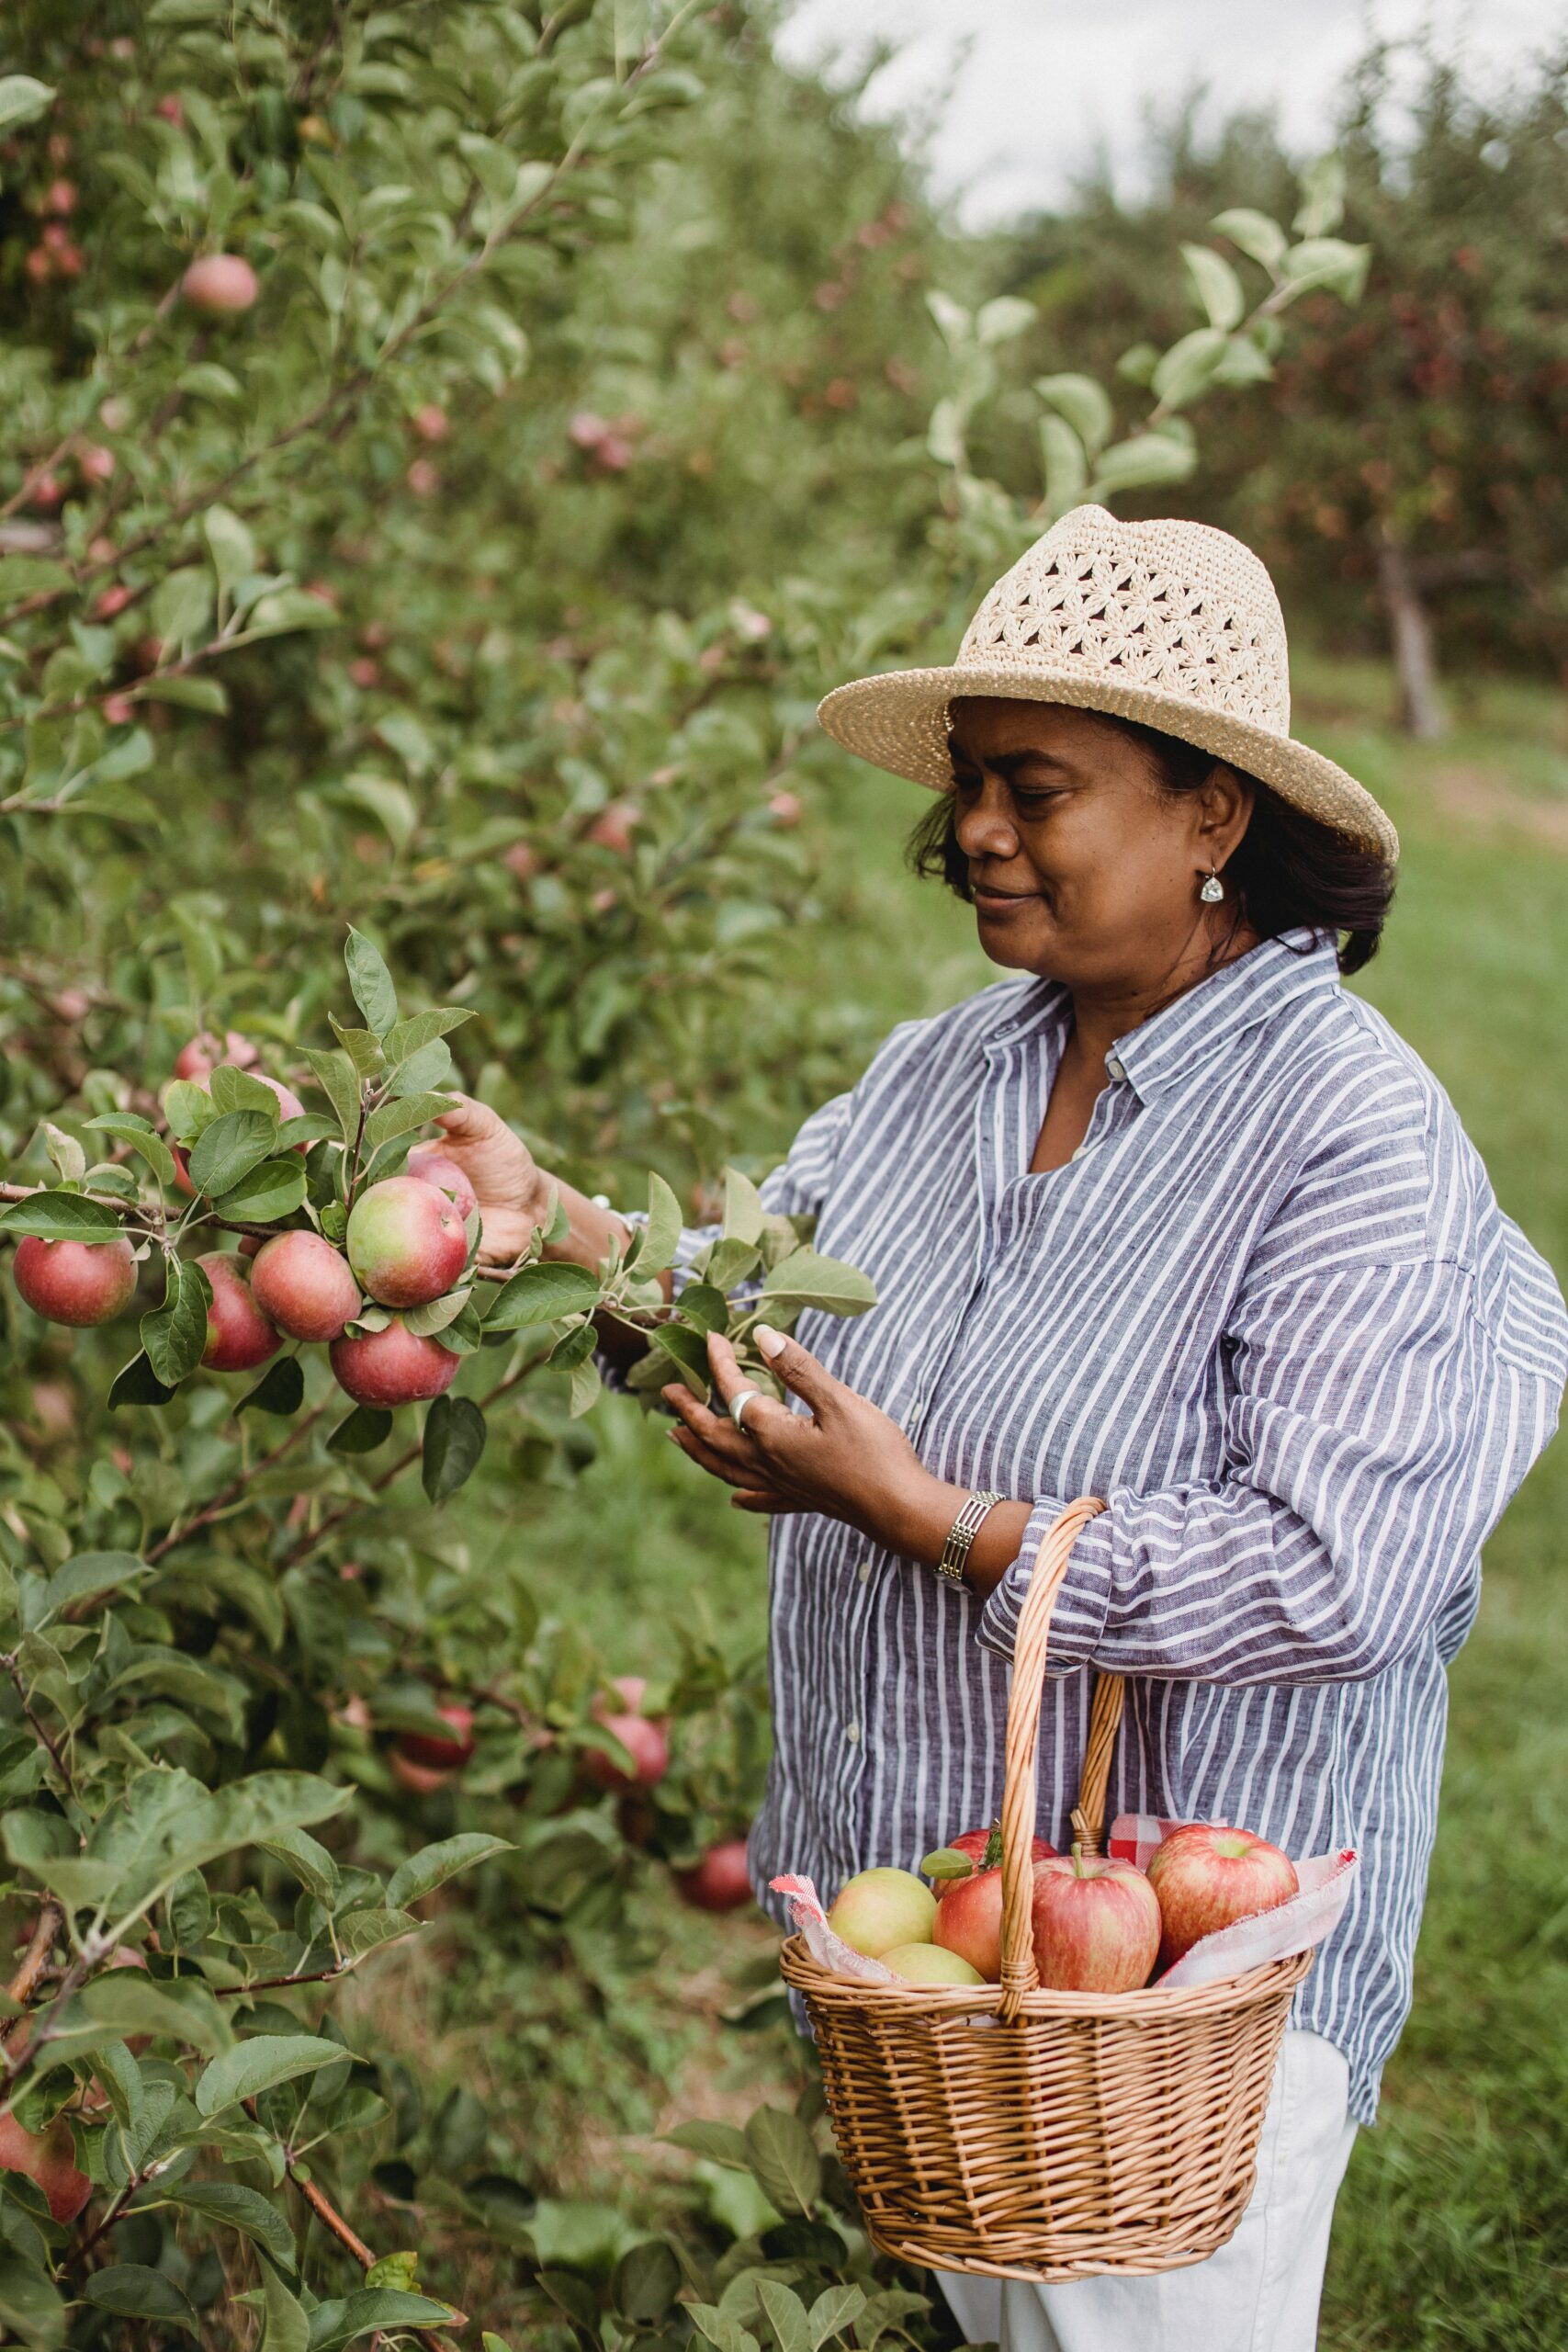 A woman spending otime outdoors by picking apples - one of the recommended personal practices